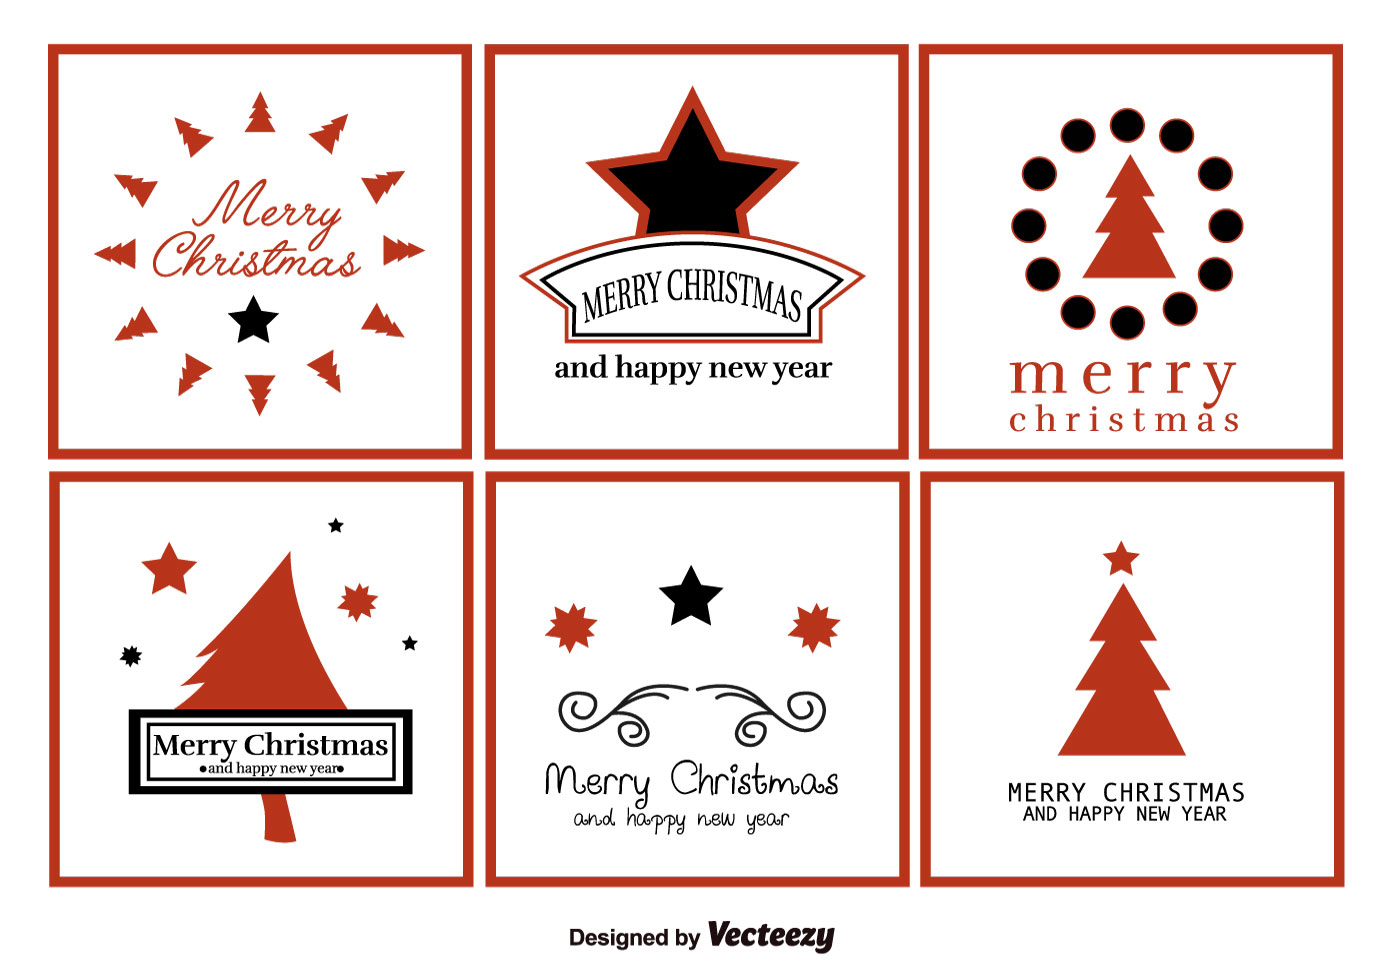 merry christmas greeting labels download free vectors clipart graphics vector art